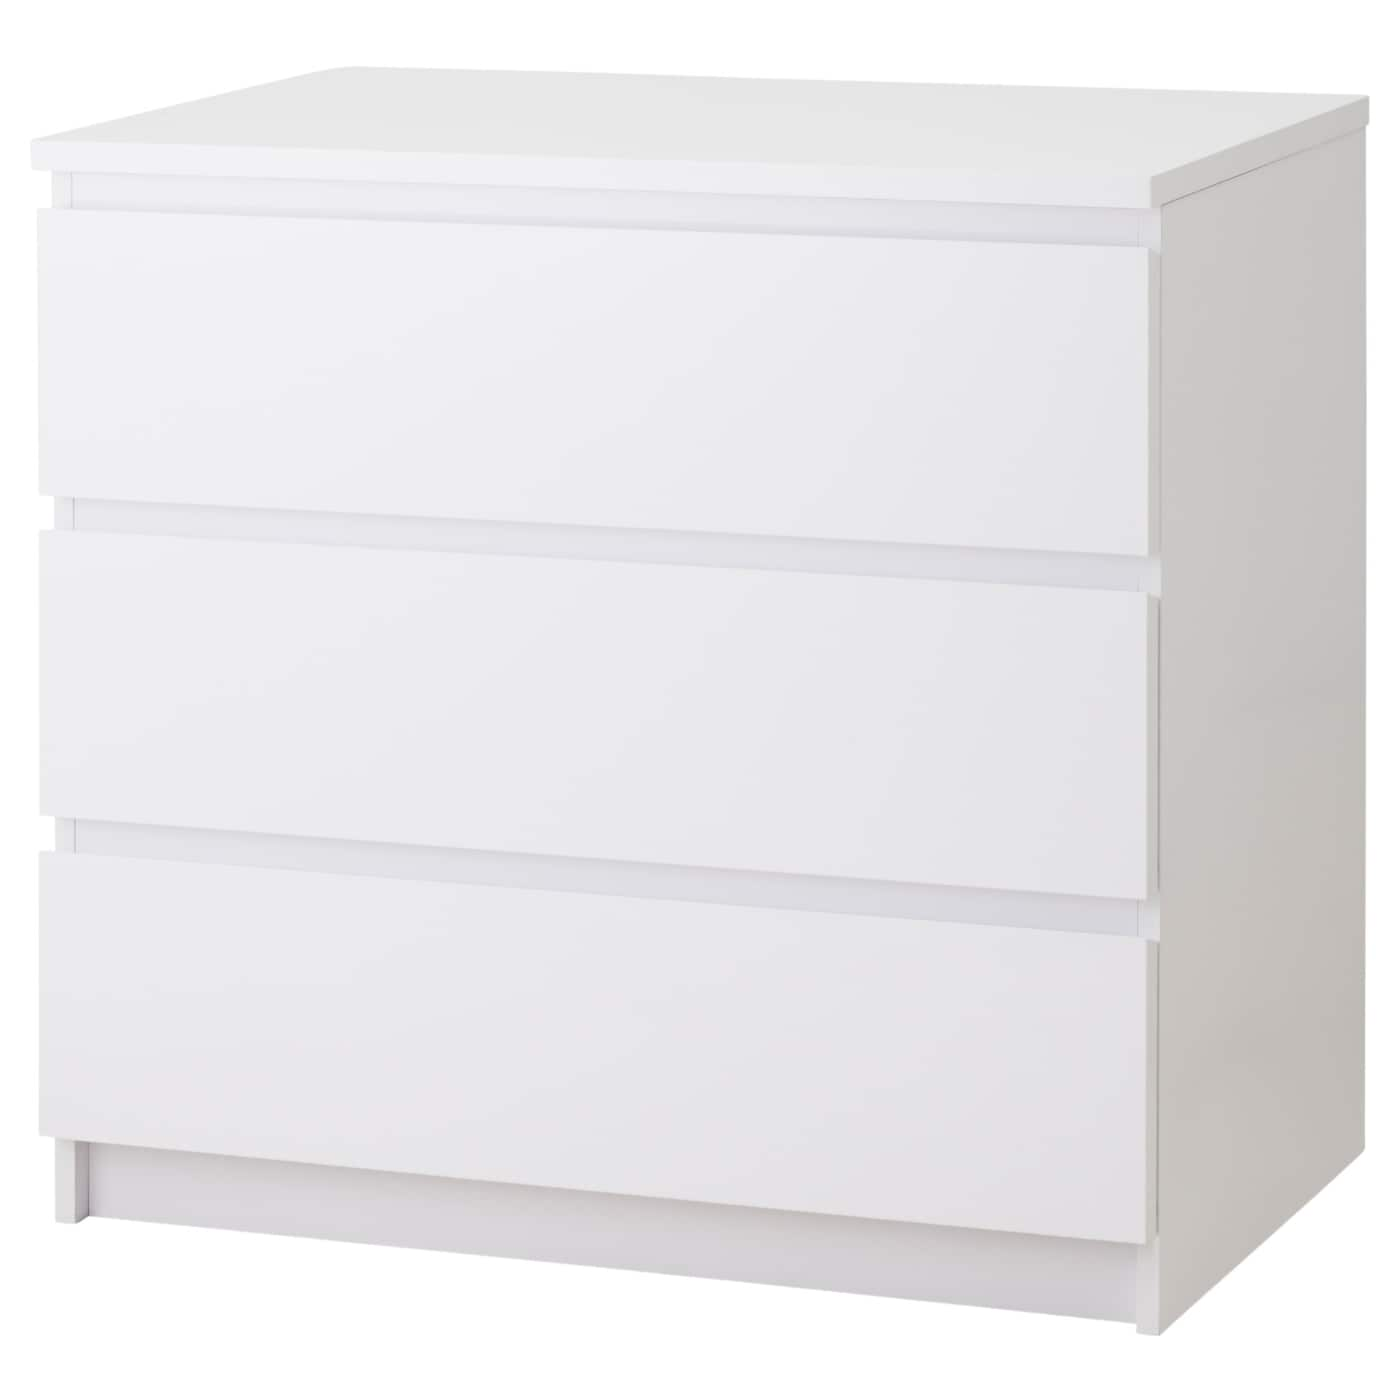 malm chest of 3 drawers white high gloss 80 x 78 cm ikea. Black Bedroom Furniture Sets. Home Design Ideas